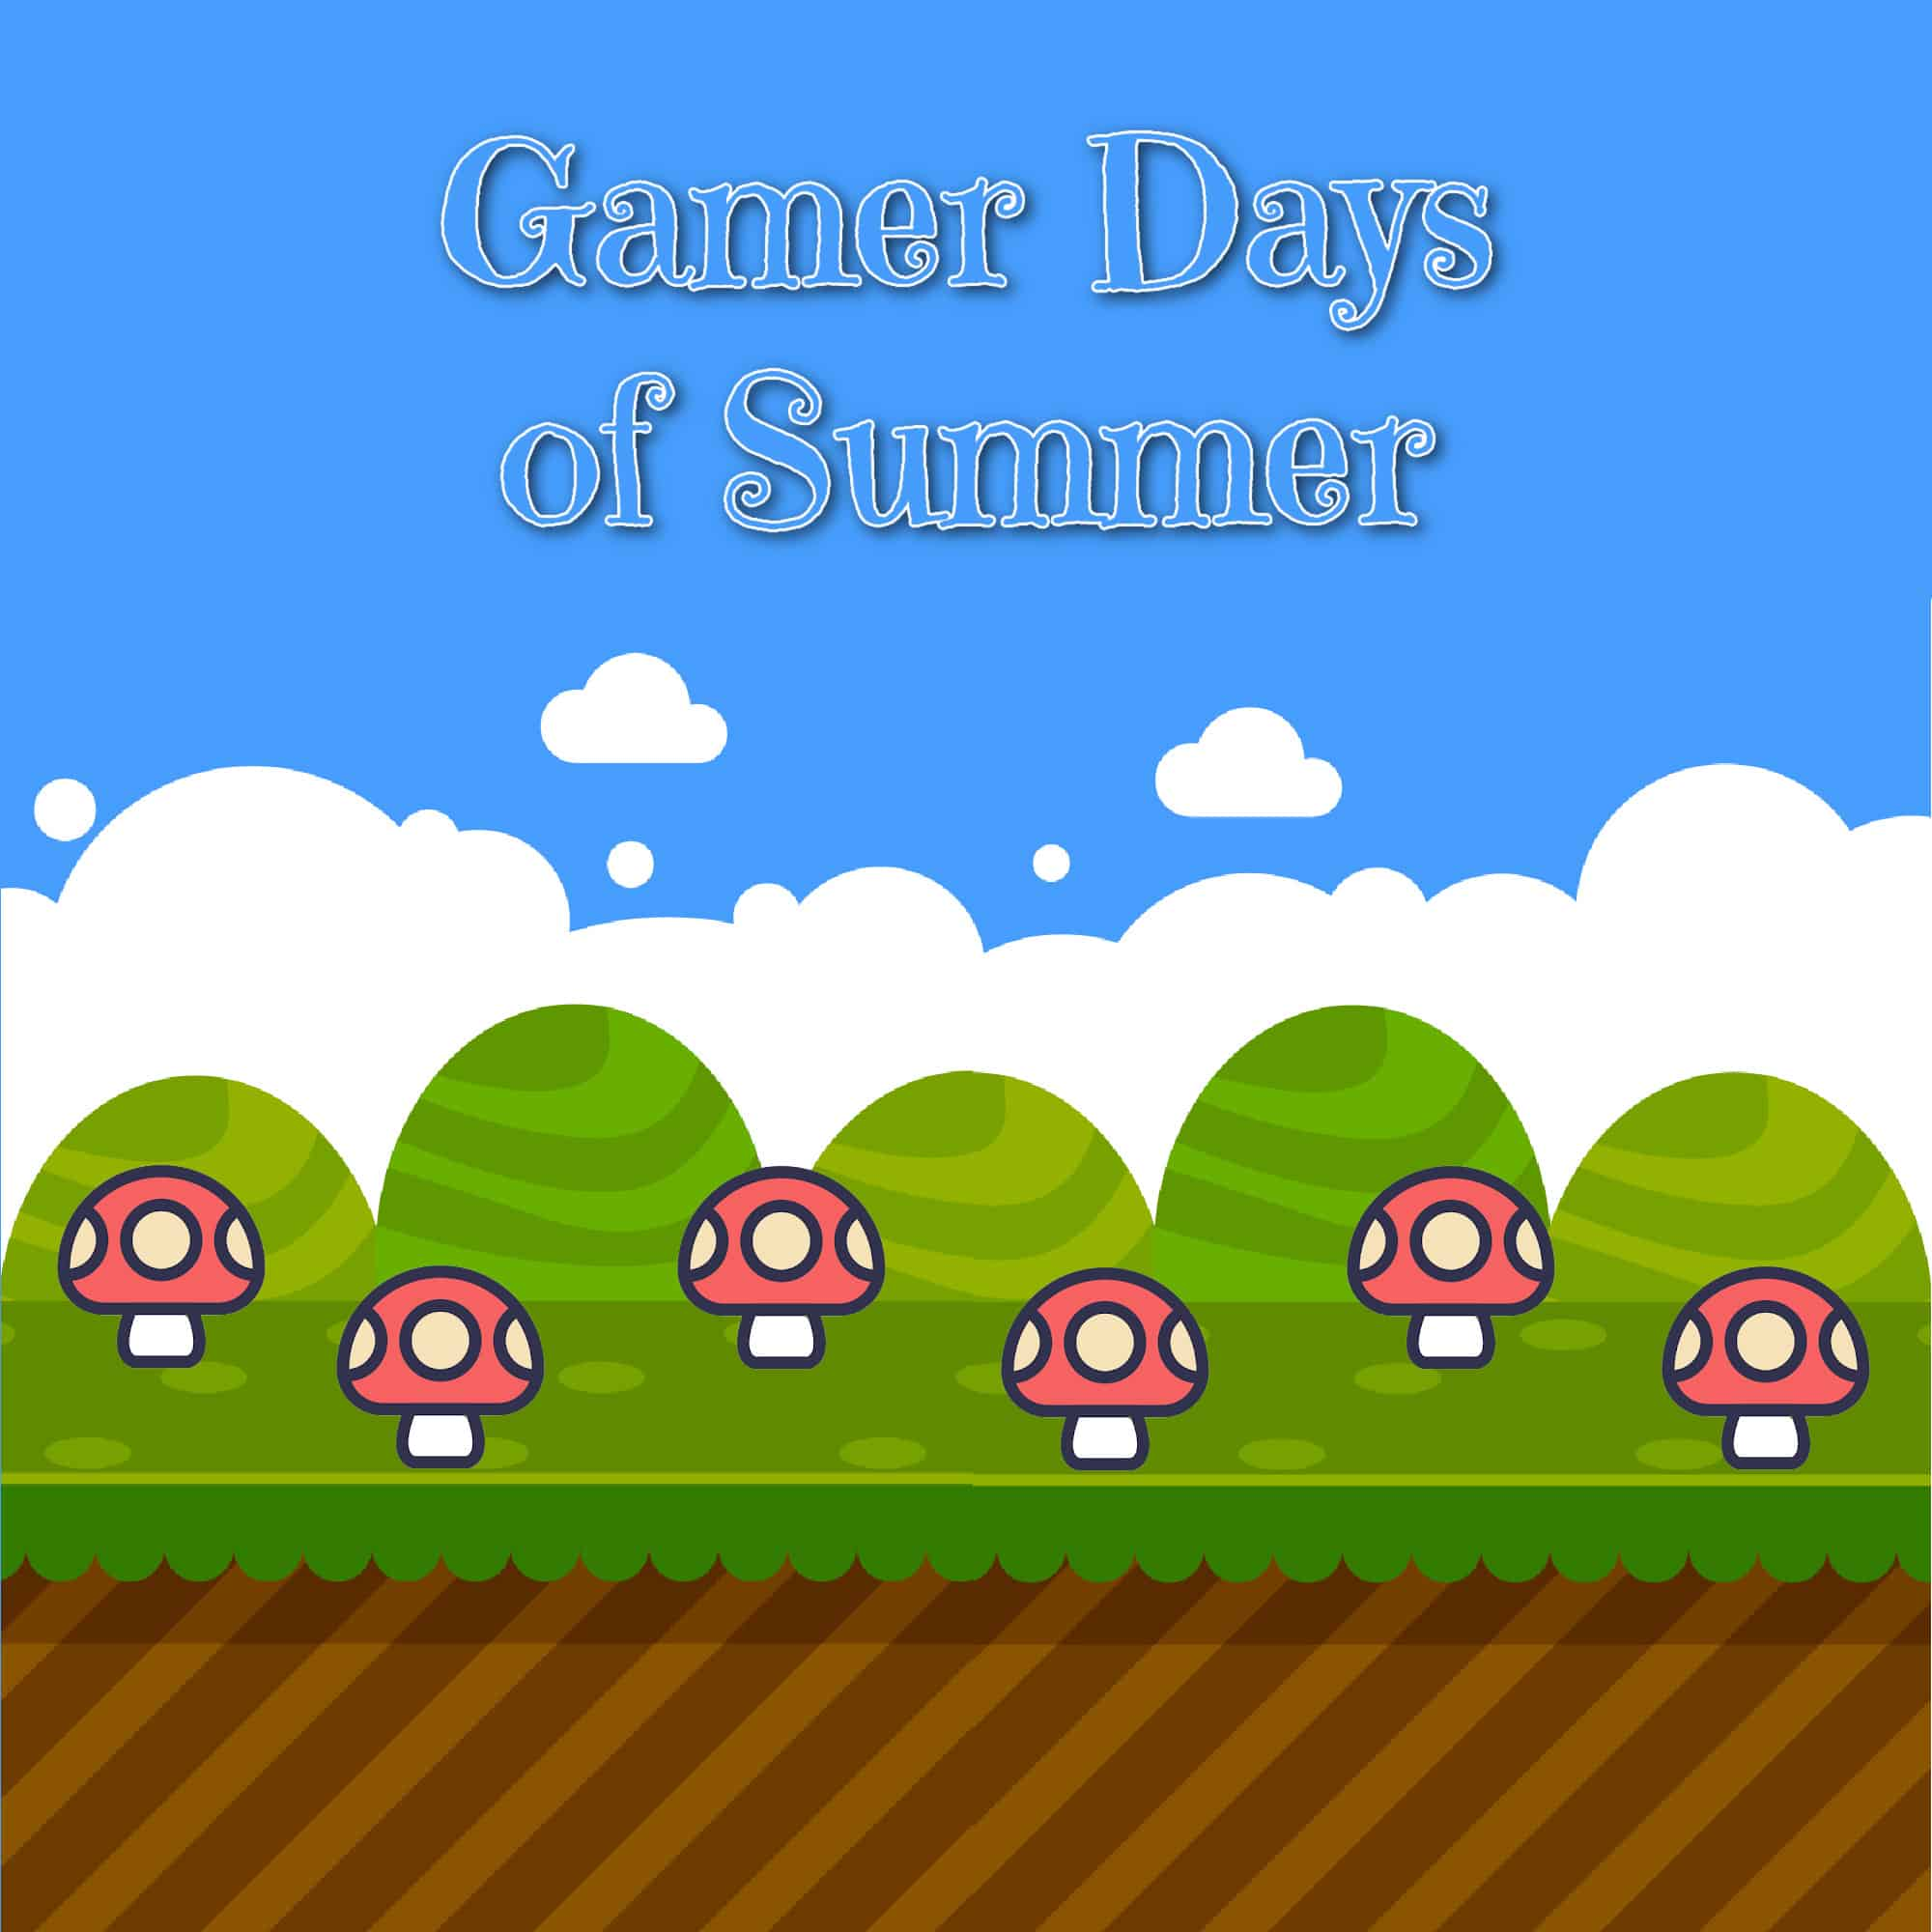 An illustration with green hills and red mushrooms and the words Gamer Days of Summer.